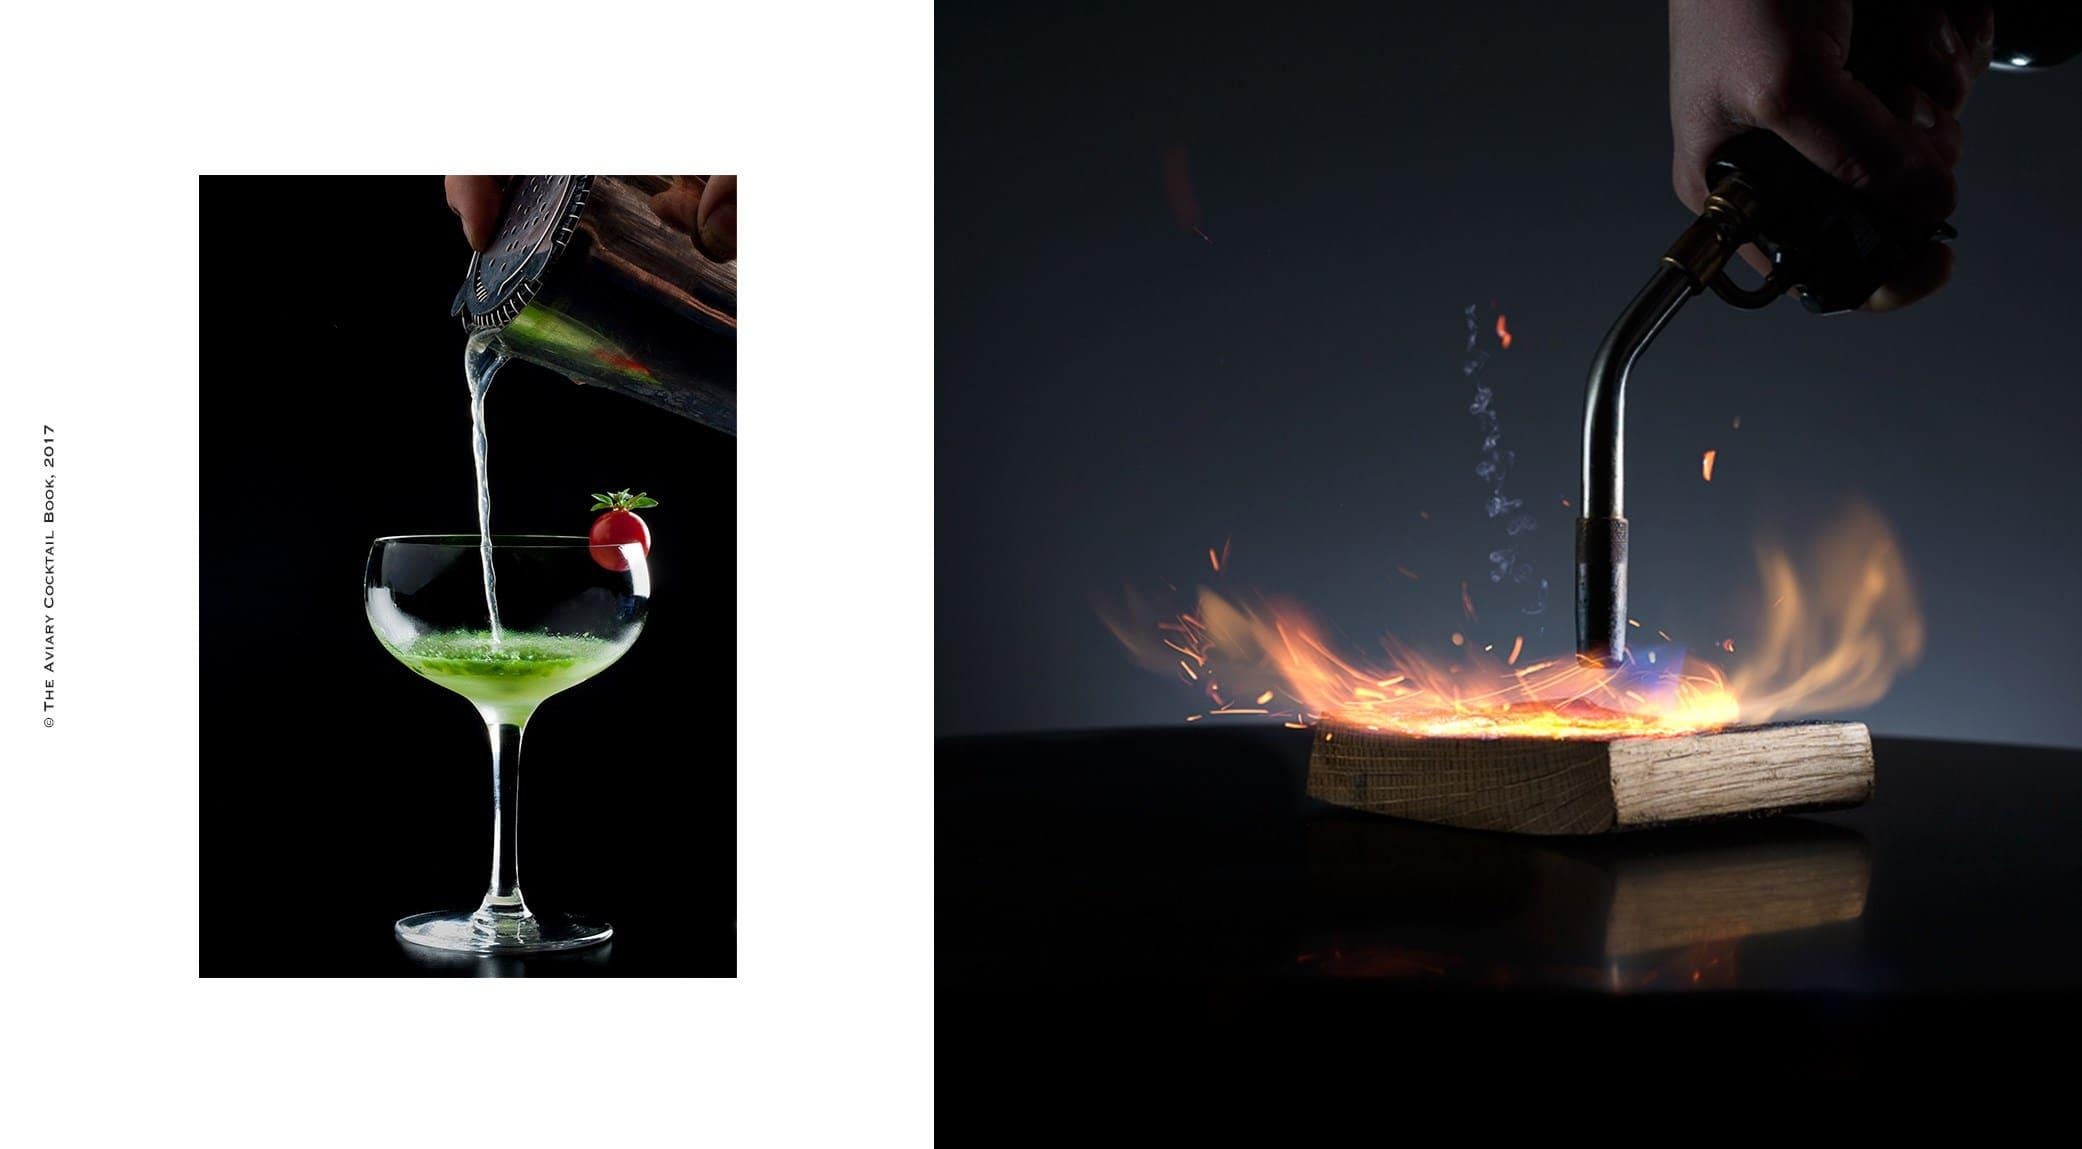 original_The-Aviary-Cocktail-Book-09.jpg